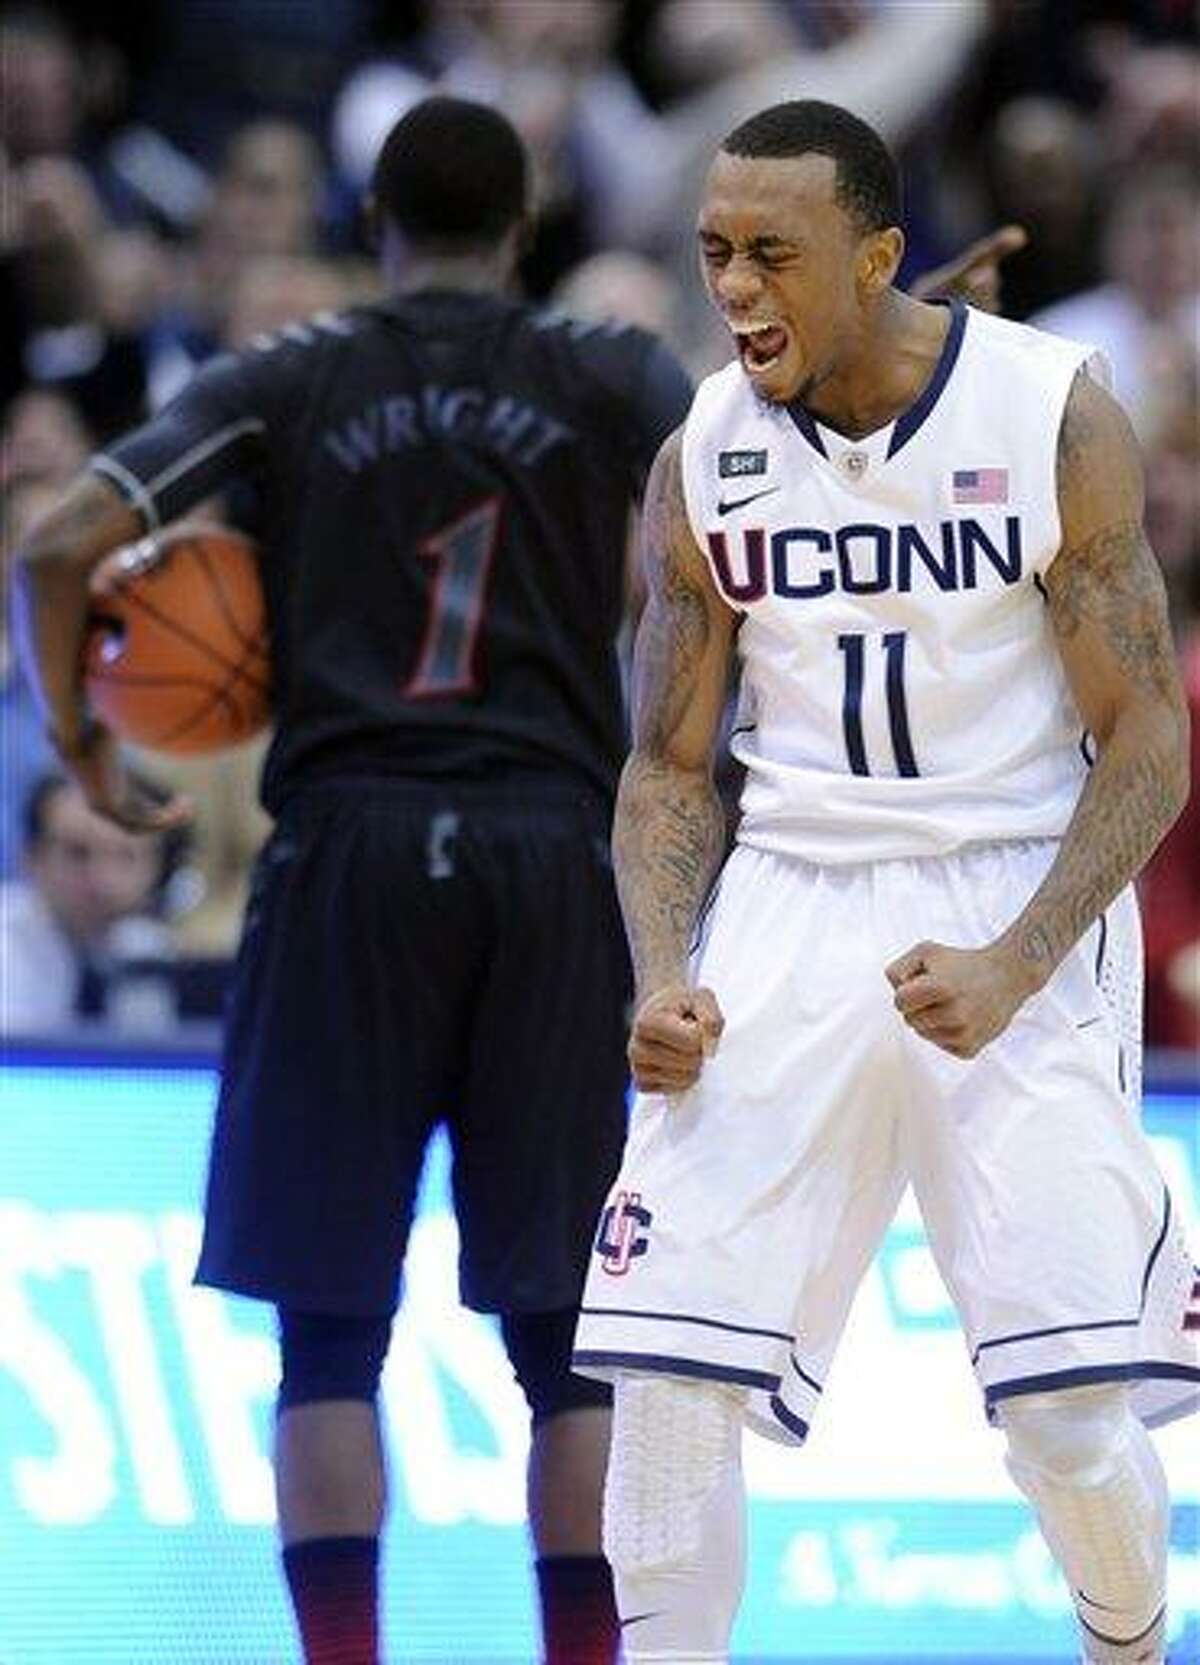 Connecticut's Ryan Boatright, right, celebrates after Cincinnati's Cashmere Wright, background, turned the ball over late in overtime of Connecticut's 73-66 victory in an NCAA college basketball game in Hartford, Conn., Thursday, Feb. 21, 2013. (AP Photo/Fred Beckham)